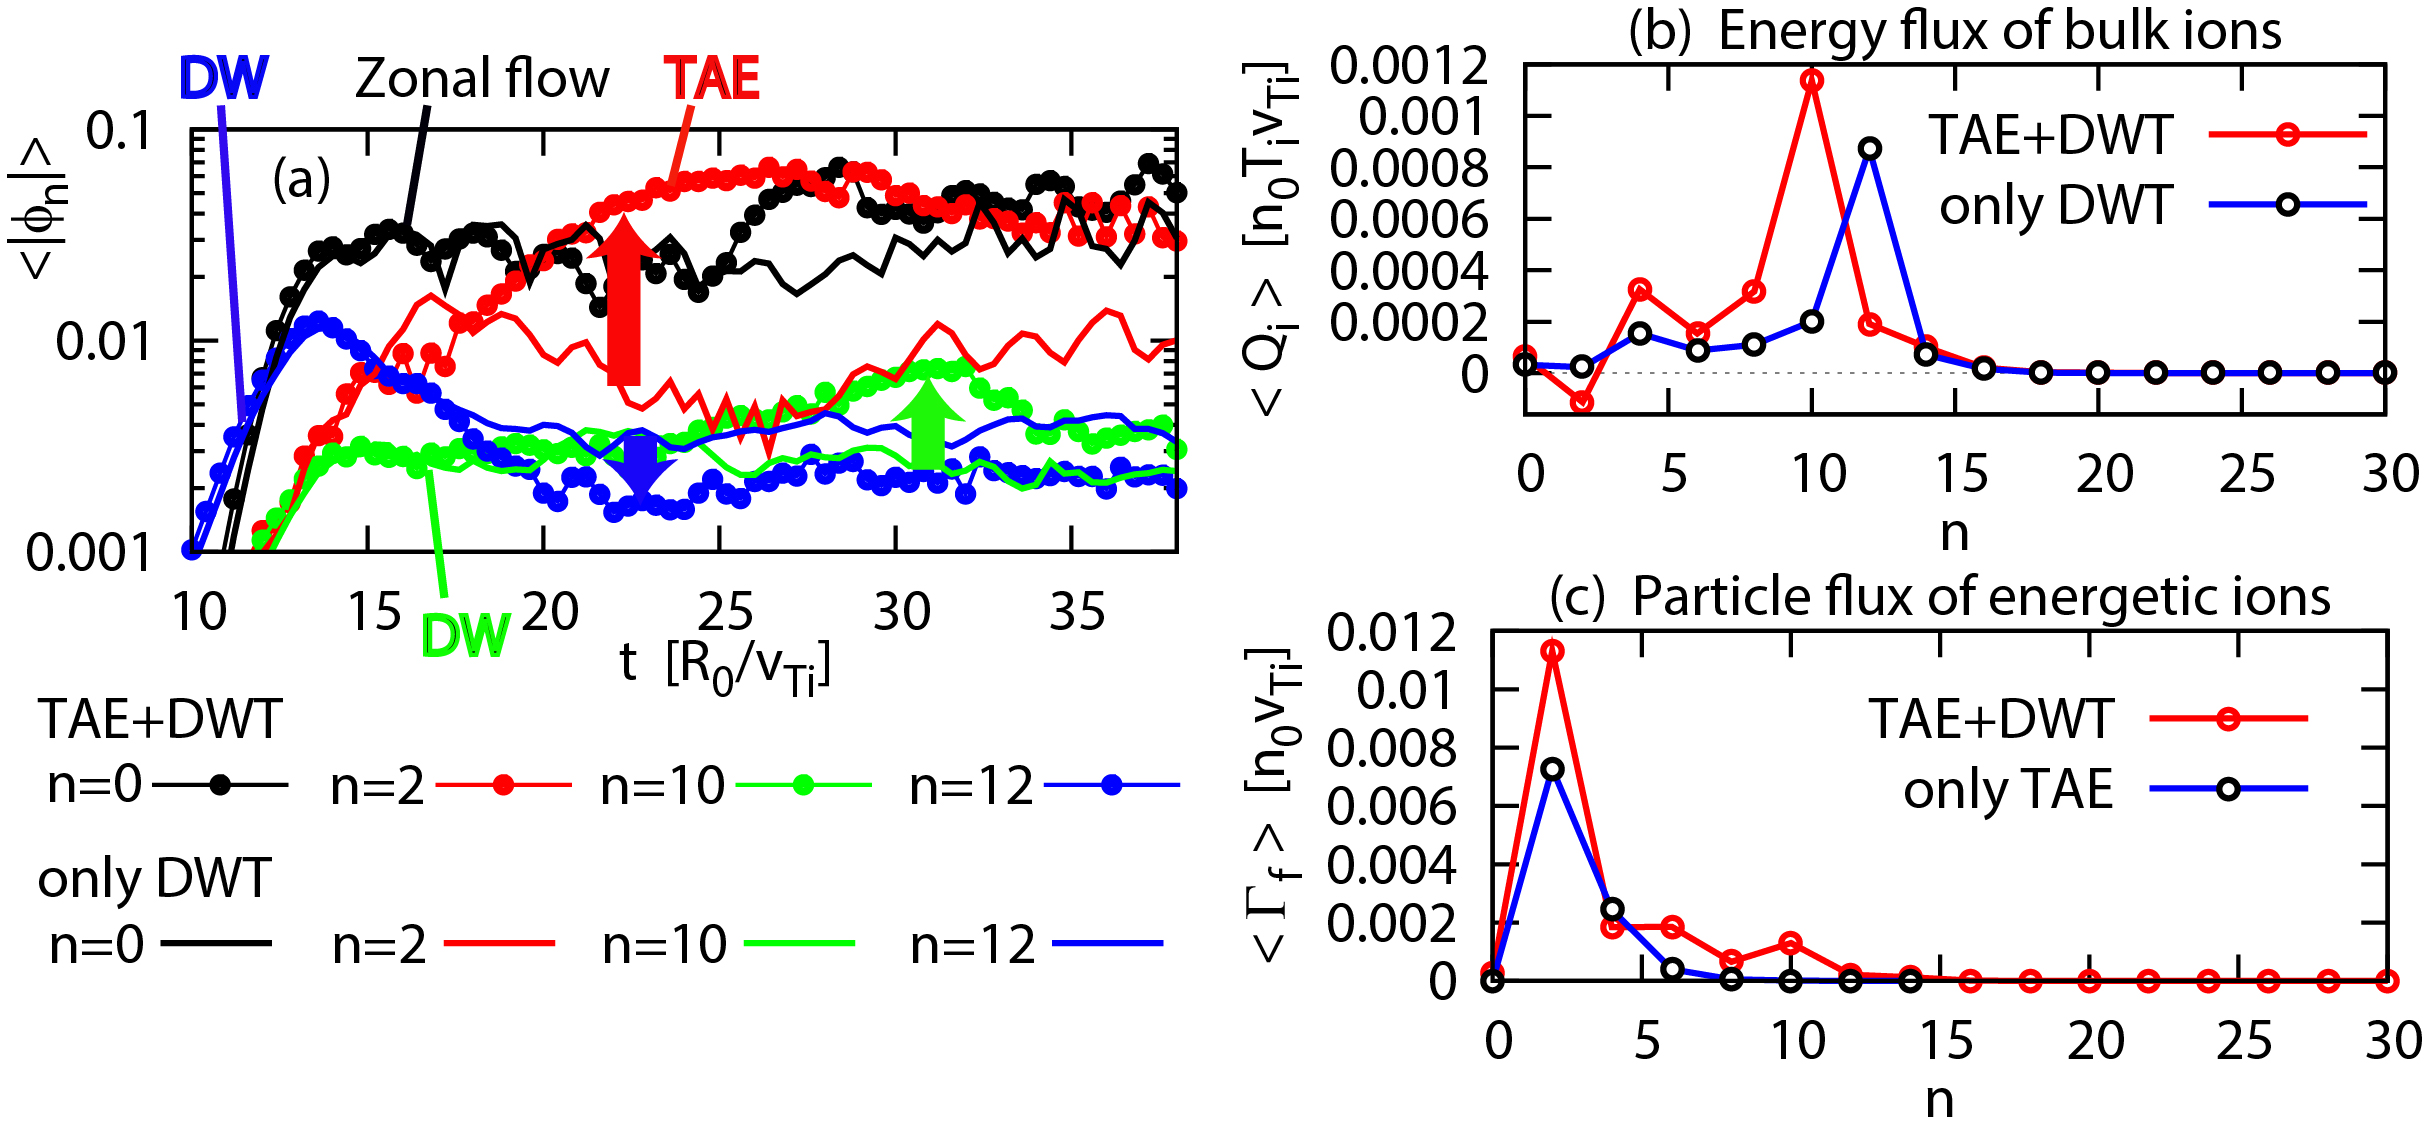 "(a) Time evolution of electrostatic potential $\phi_n$ of zonal flow ($n=0$), $n=2$, and drift-wave modes ($n=10$ and 12) in ""TAE+DWT"" (TAE and drift-wave turbulence) and ""only DWT"" (DWT without TAE). The red arrow indicates the enhancement of $n=2$ mode by the growth of the TAE ($n=2$) in ""TAE+DWT"". The blue arrow indicates the suppression of the most unstable drift-wave mode ($n=12$) by the presence of TAE, and the green arrow indicates the enhancement of a drift-wave mode ($n=10$) caused by the interaction between the TAE and the most unstable drift-wave mode ($n=12$). Time averaged spectrum of (b) the energy flux of bulk ions $Q_i$ and (c) the particle flux of energetic ions $\Gamma_f$. These spectra are averaged over the time period $t=25-38$."